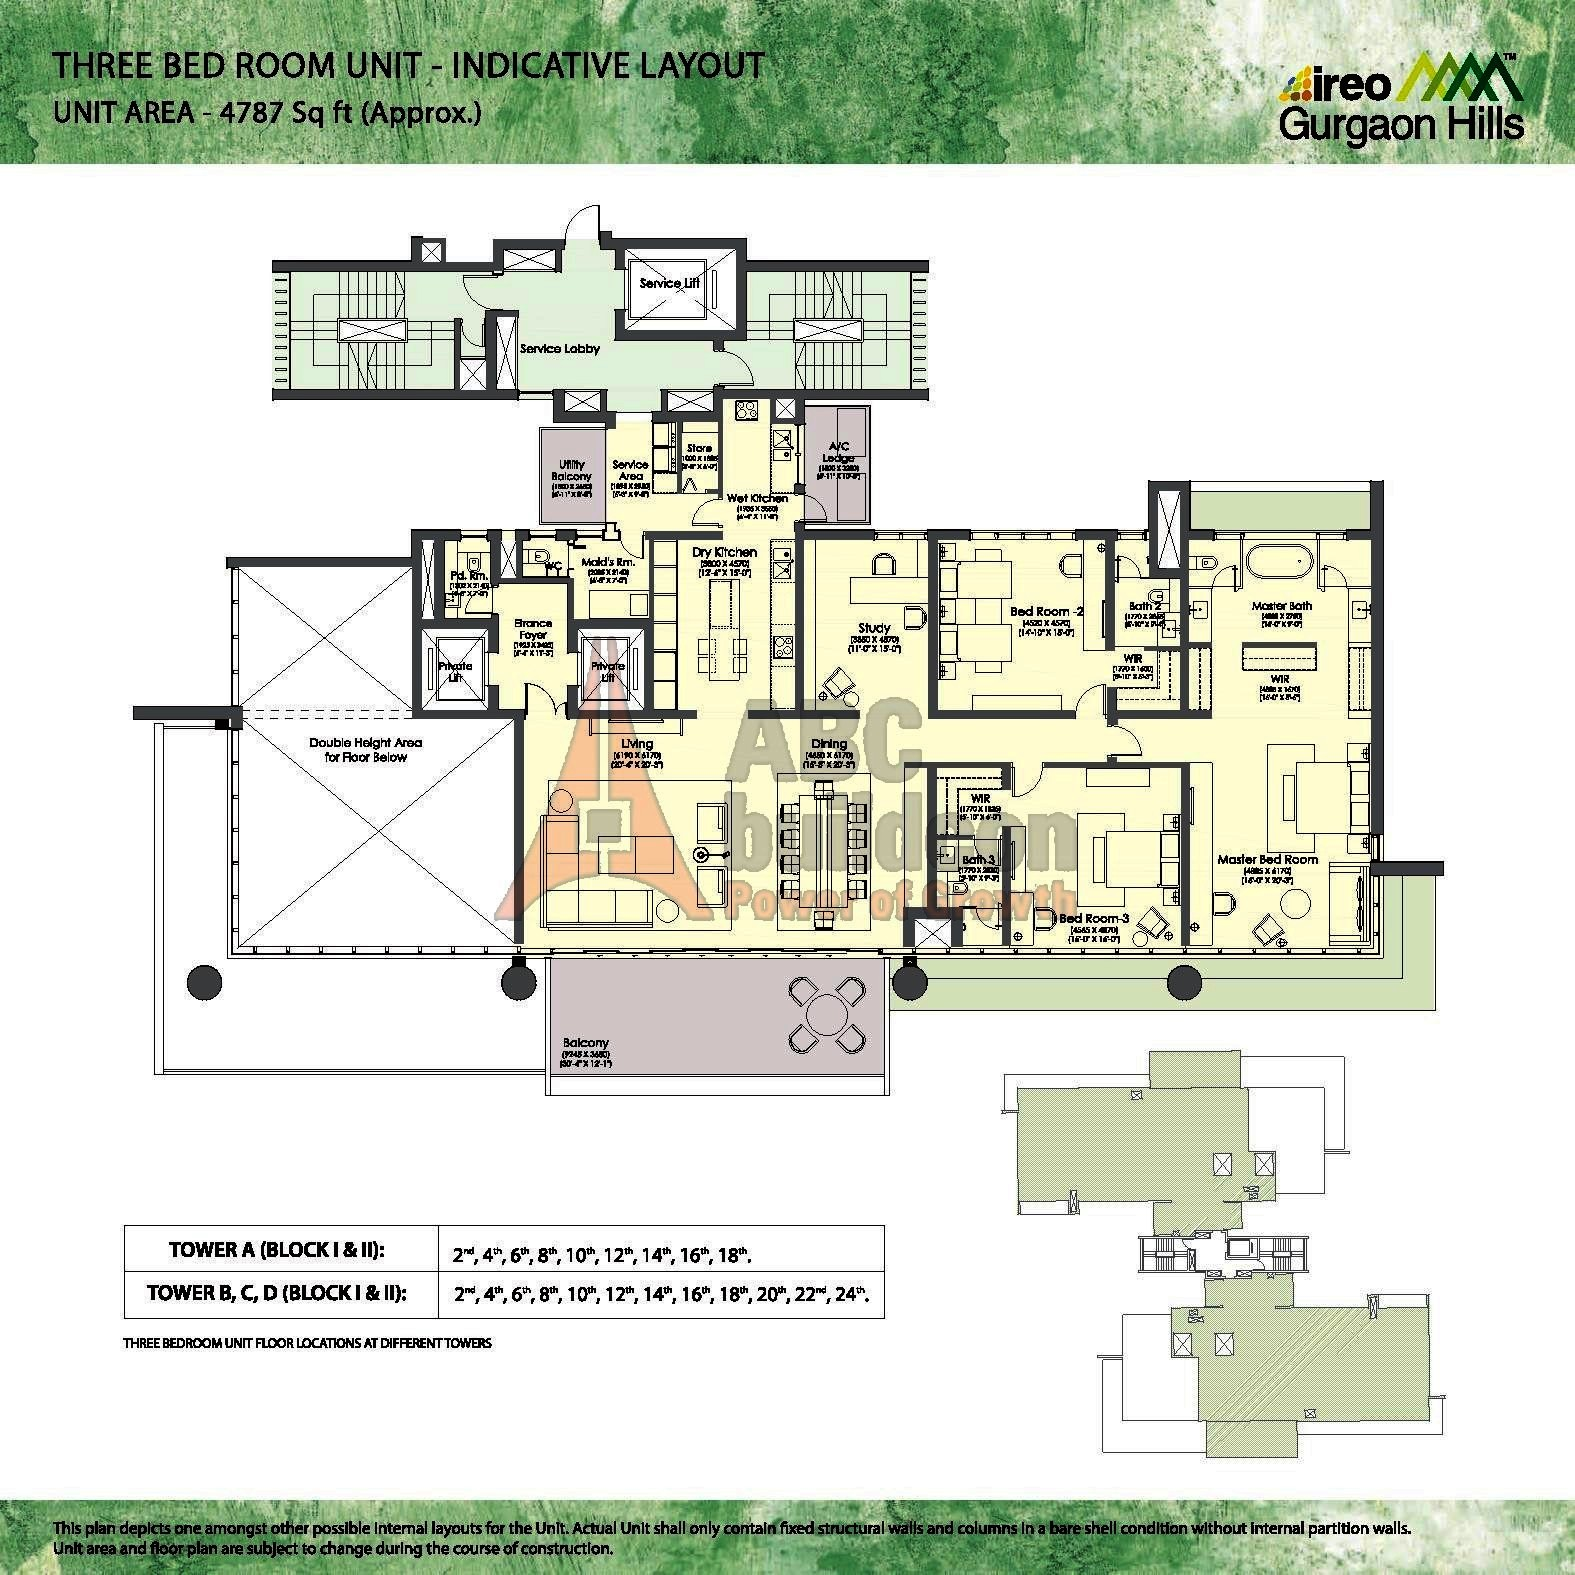 Ireo Gurgaon Hills Floor Plan Floorplan In